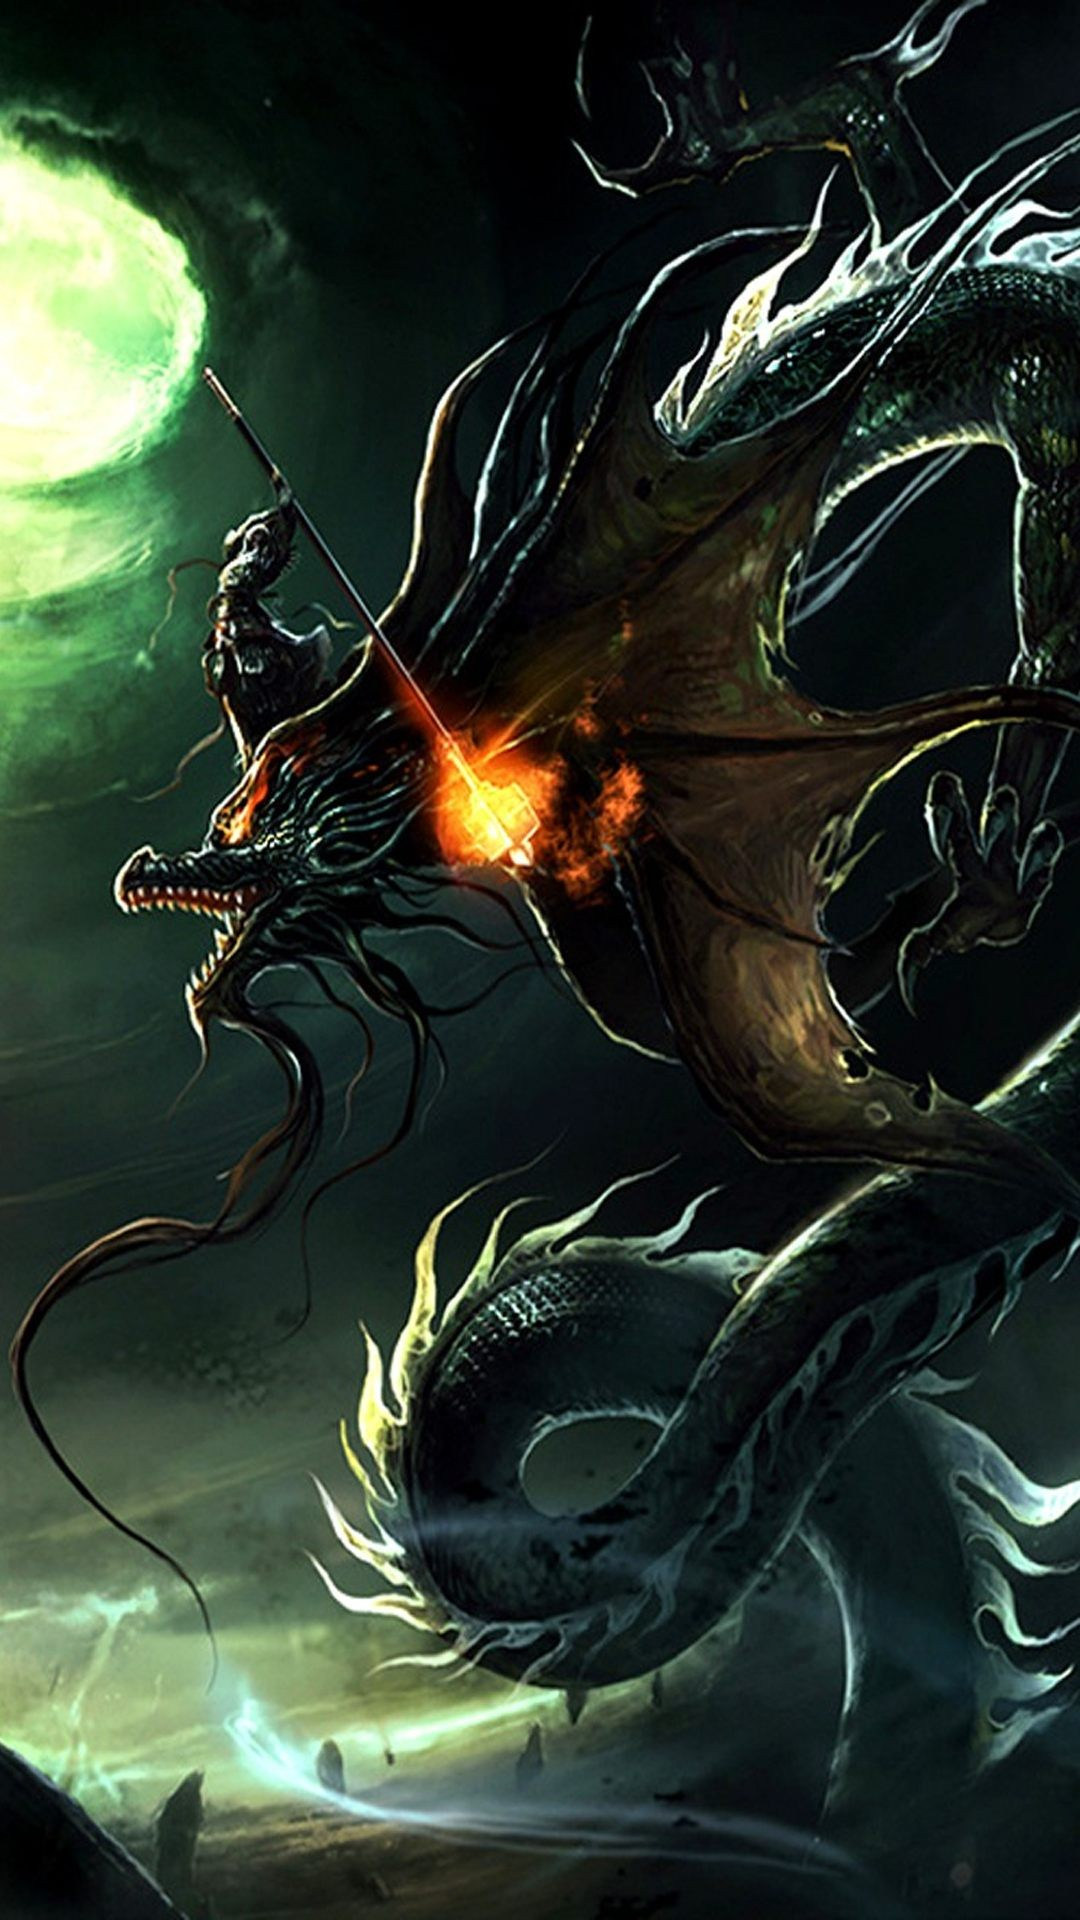 hd dragon wallpaper for iphone 40+ - page 2 of 3 - dzbc